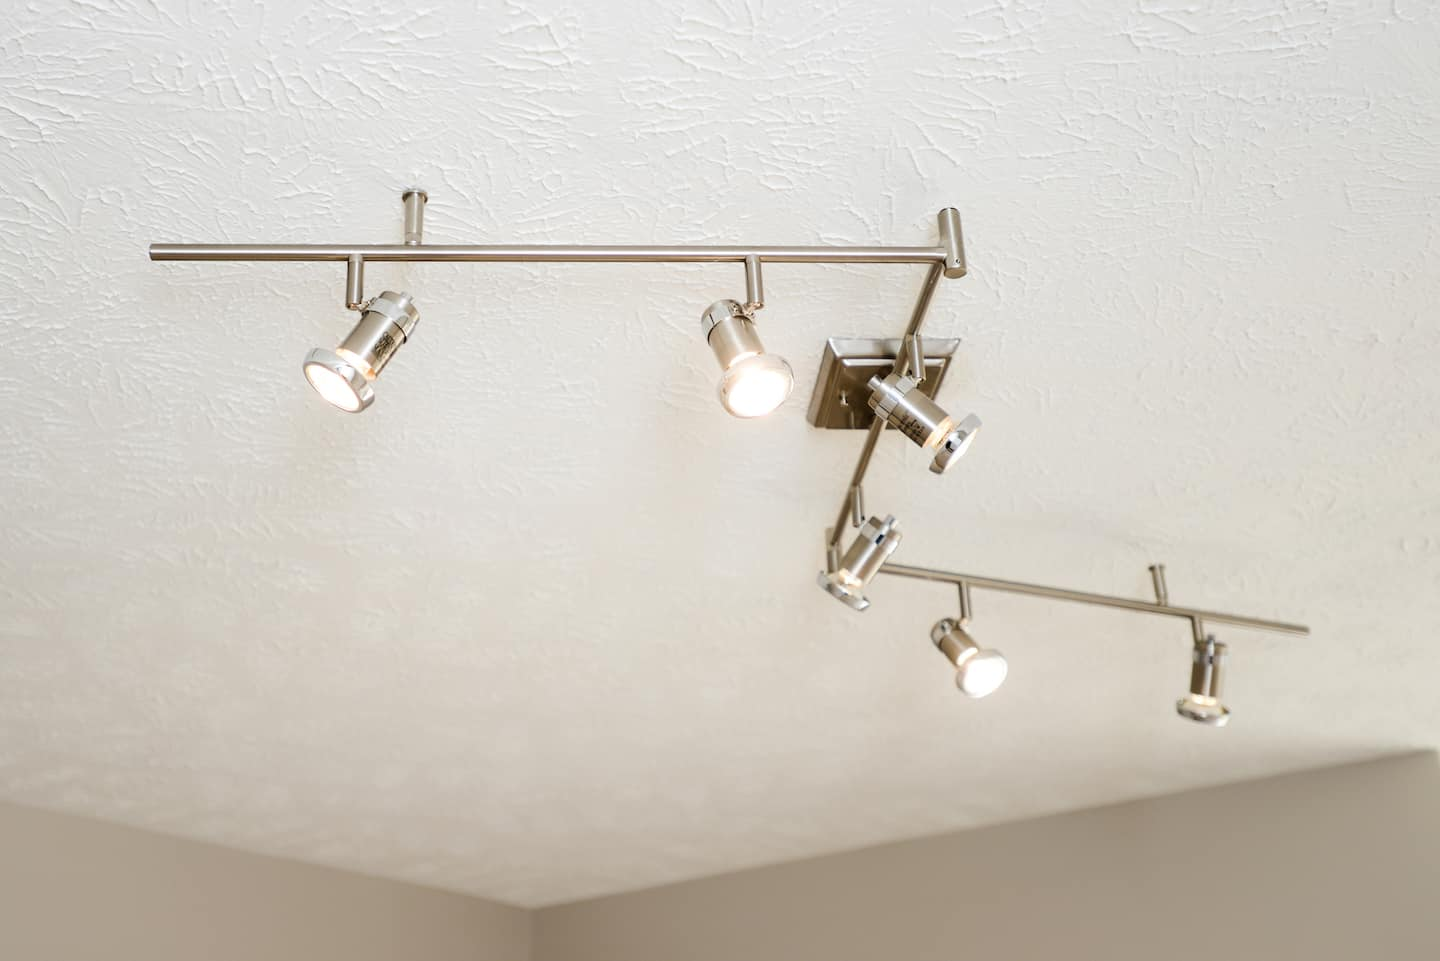 Bathroom Lights With Plugs bathroom lighting ideas to illuminate your remodel | angie's list